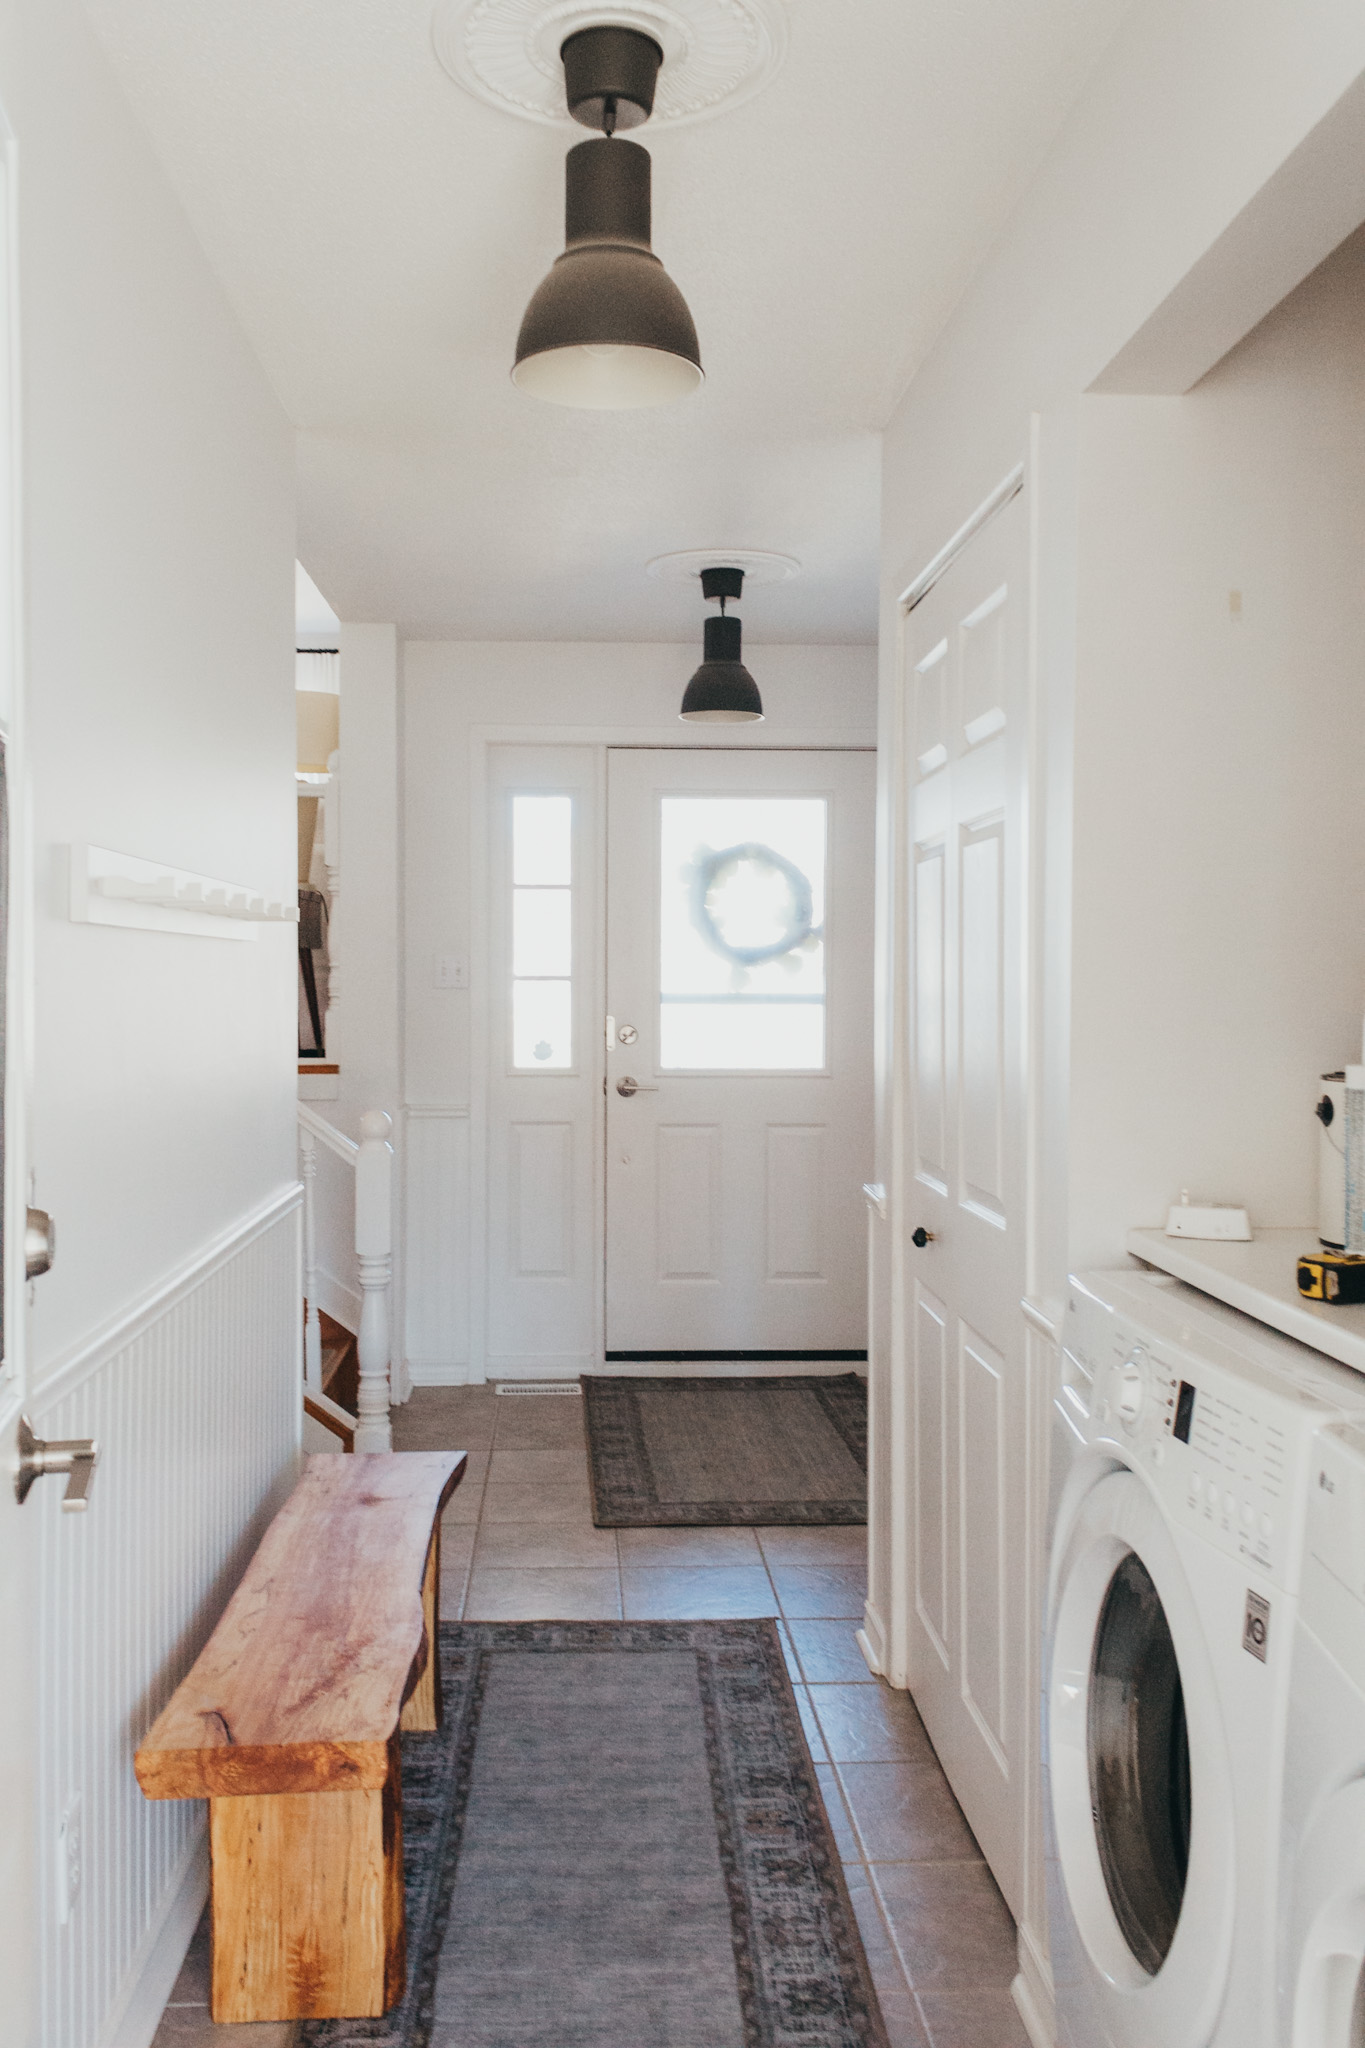 Laundry room in entryway